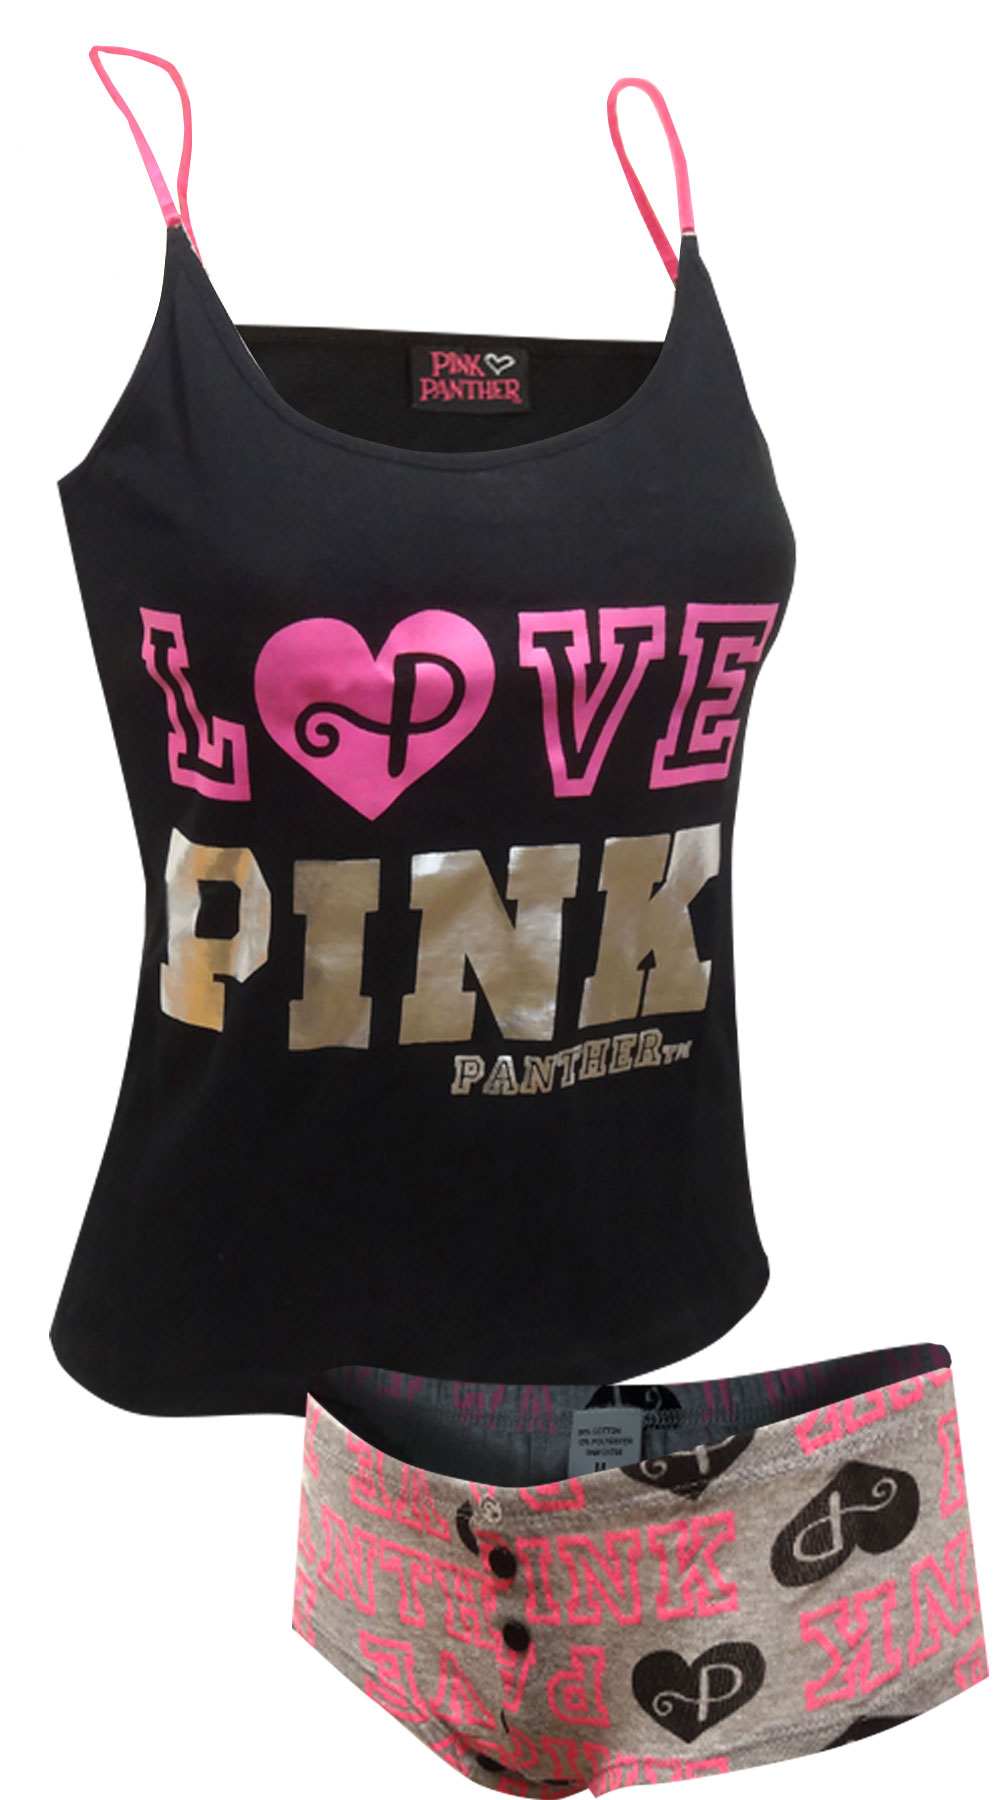 LOVE PINK Panther Black and Gray Shortie Pajama for women